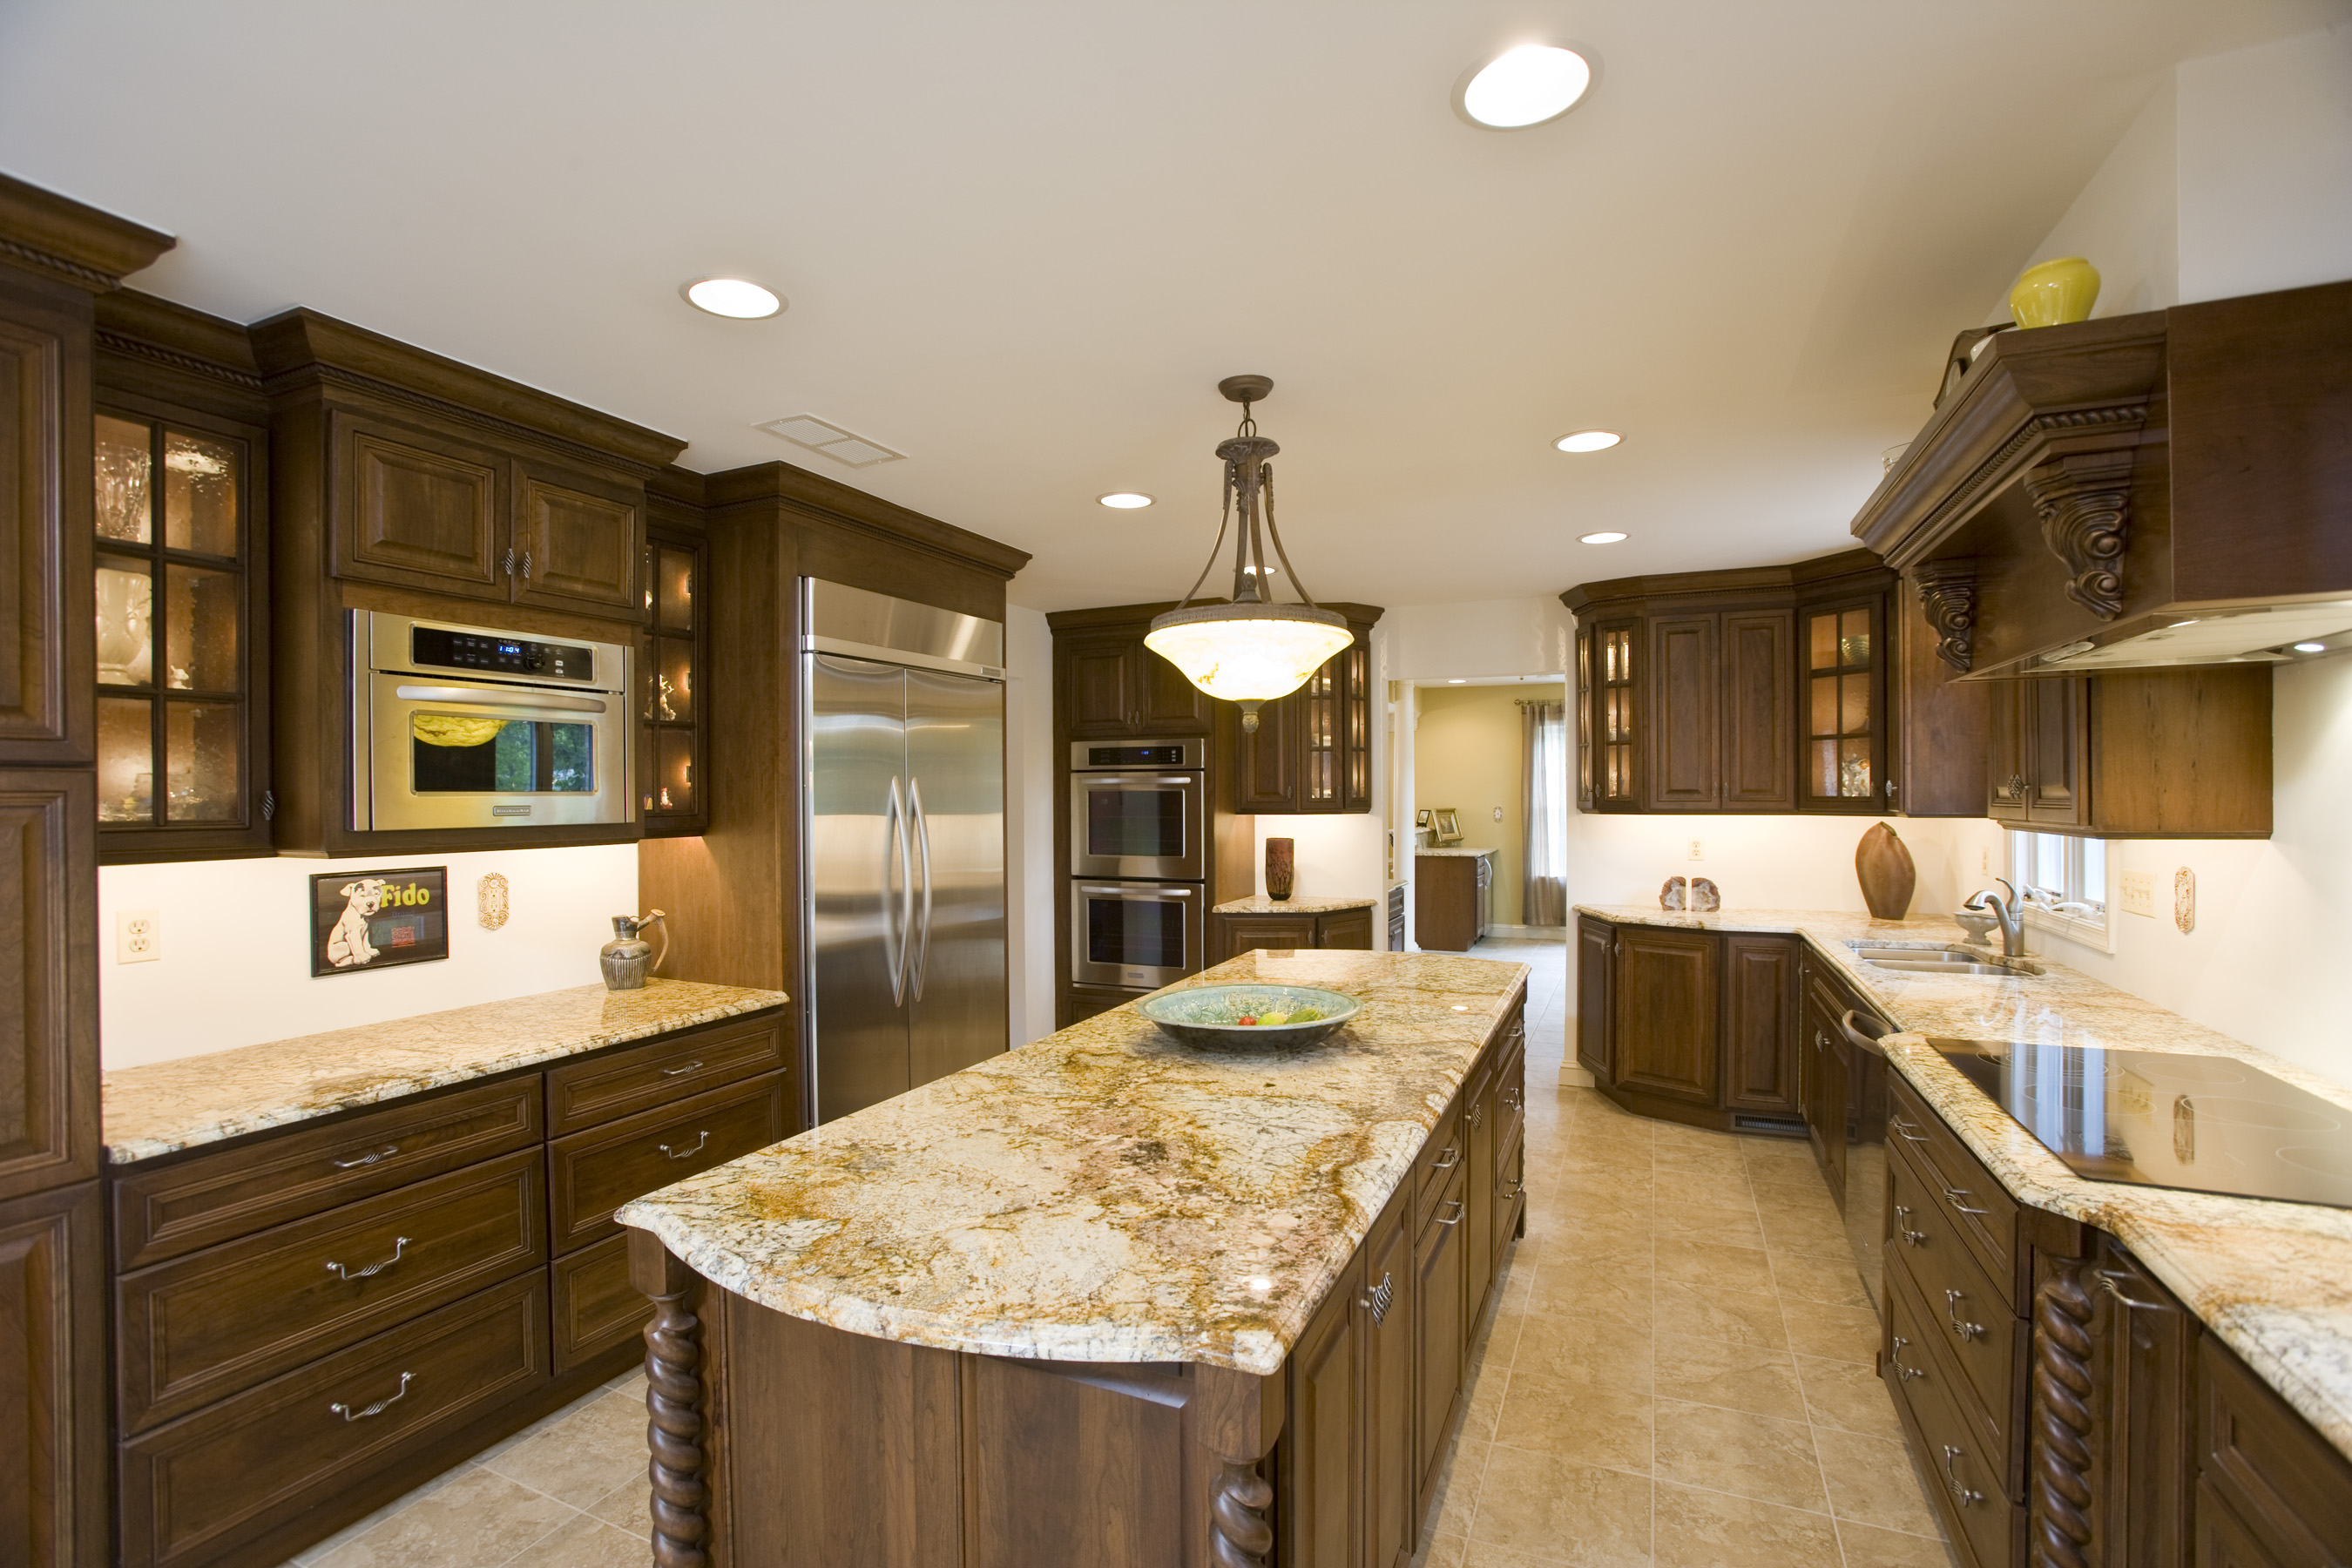 Top quality granite kitchen countertops